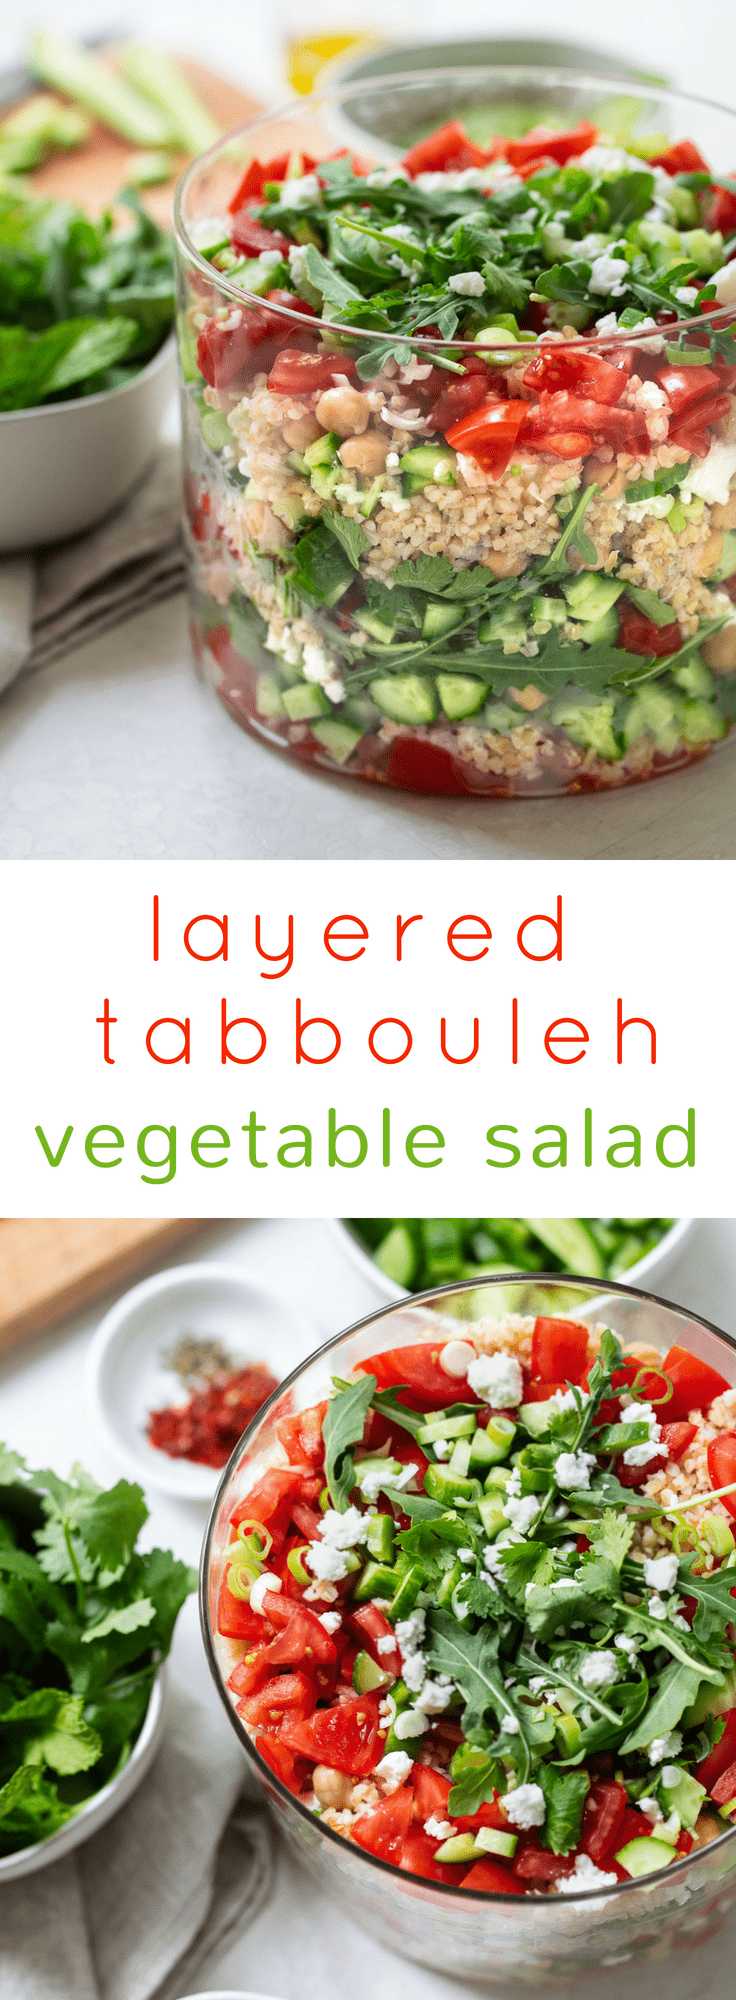 Layered Vegetable Tabbouleh Salad: An easy an healthy make-ahead recipe